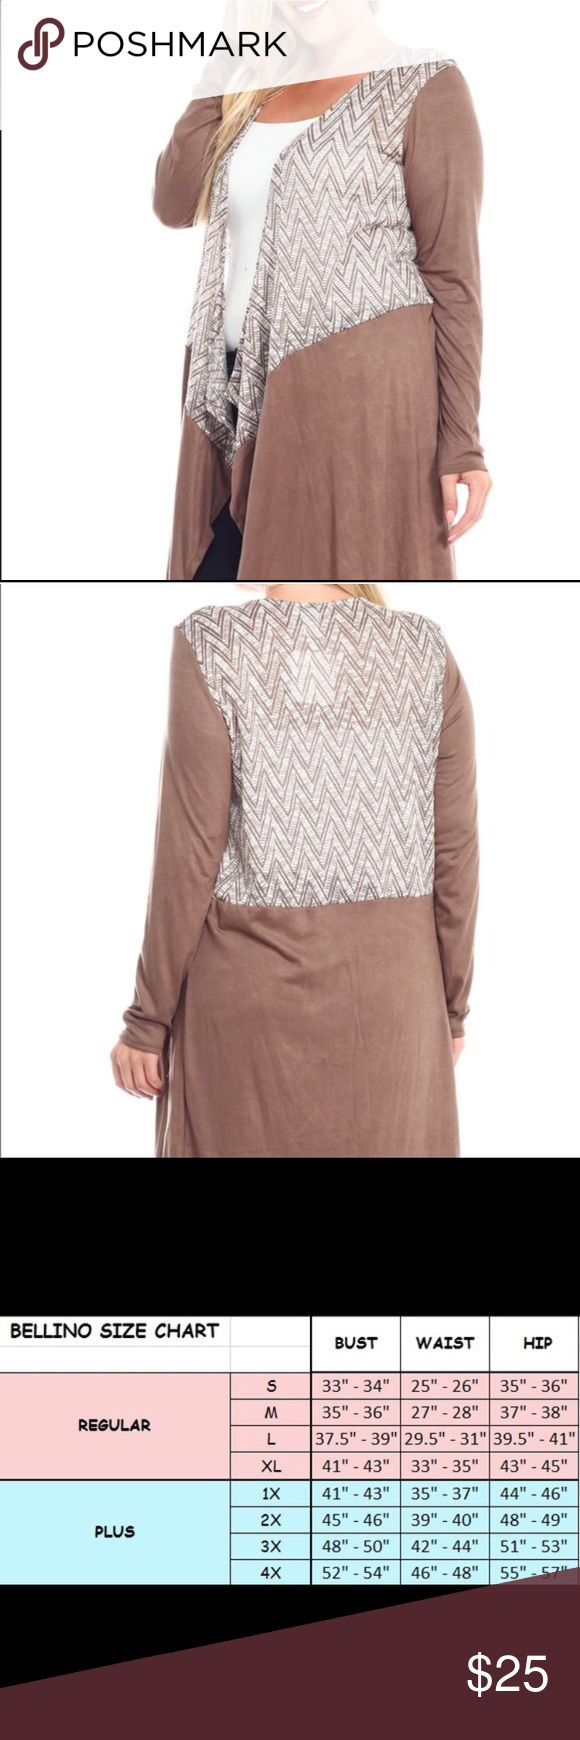 SALE ❗️Plus Size Bellino Zig Zag Cardigan This is a gorgeous and soft plus size Bellino cardigan/duster. It is tan and white. It's new with tags. Made 53% polyester, 43% rayon,4% spandex. Multiple sizes available. Bellino Clothing Sweaters Cardigans